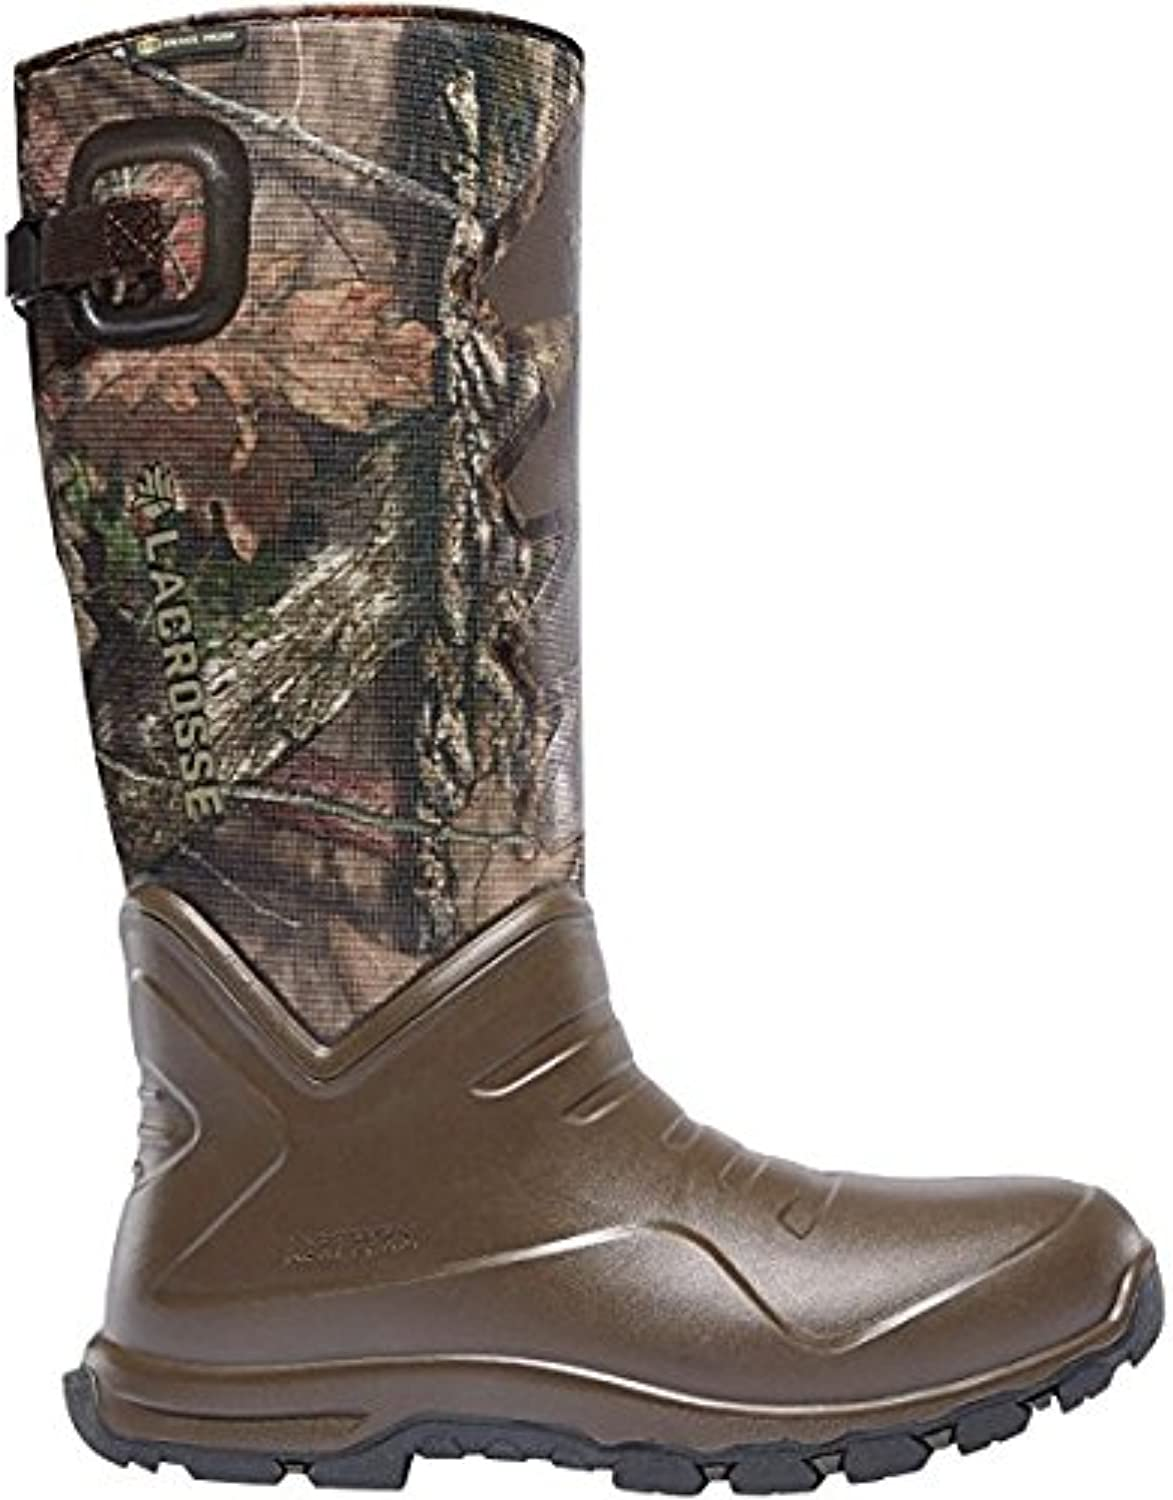 LACROSSE Aerohead Sport Snake Boot 16  Height Mossy Oak BreakUp Country (340227)  Waterproof   Insulated Modern Comfortable Hunting Combat Boot Best for Mud, Snow